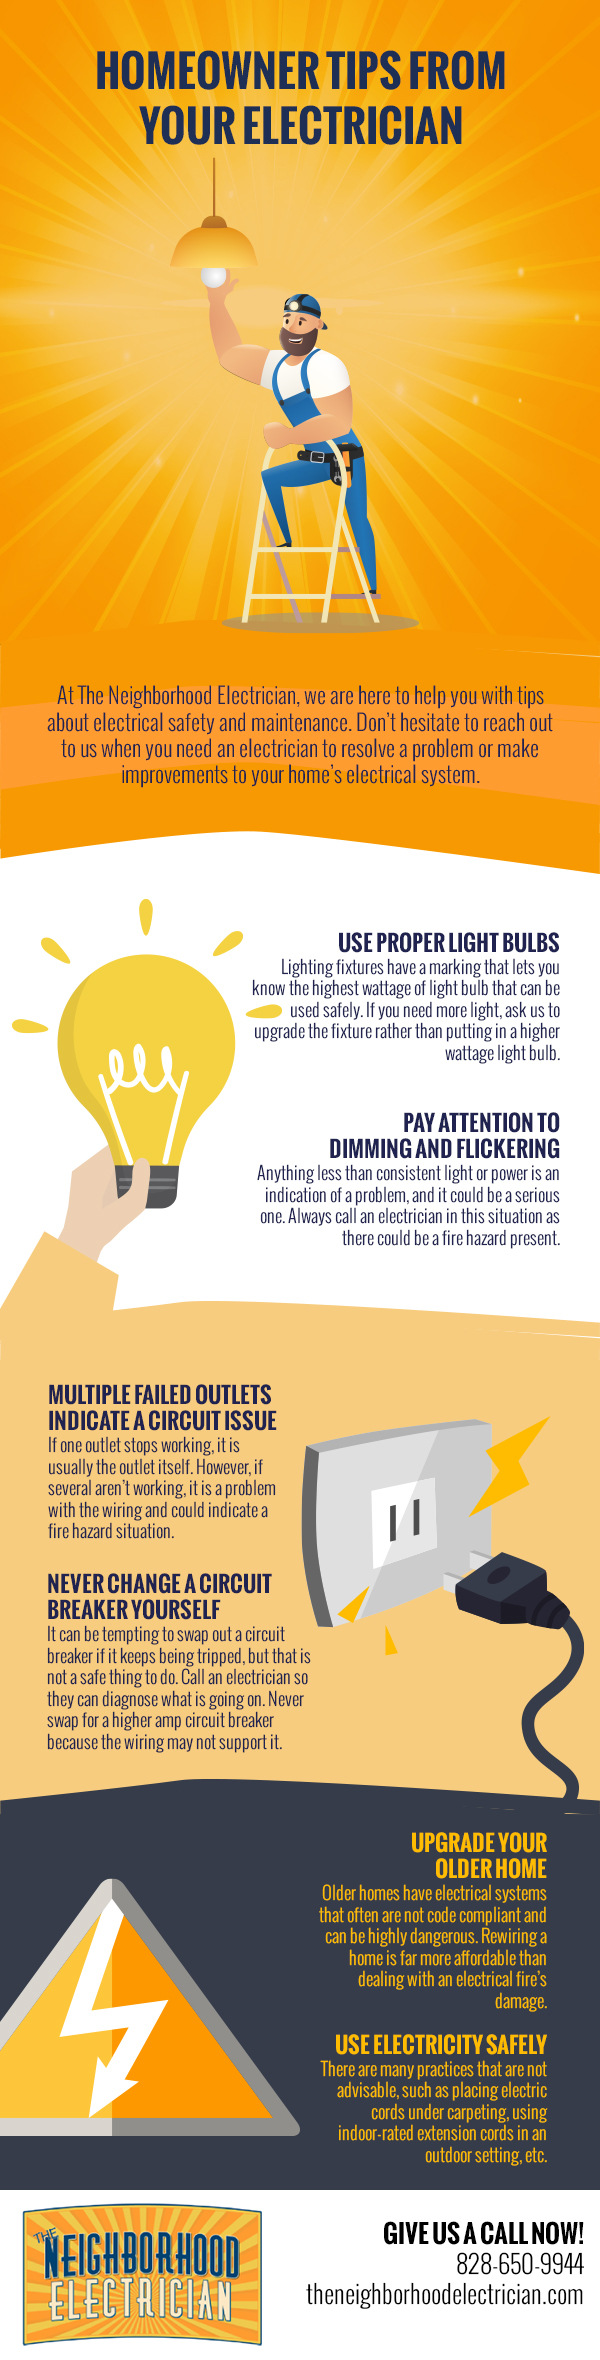 Homeowner Tips from Your Electrician [infographic]